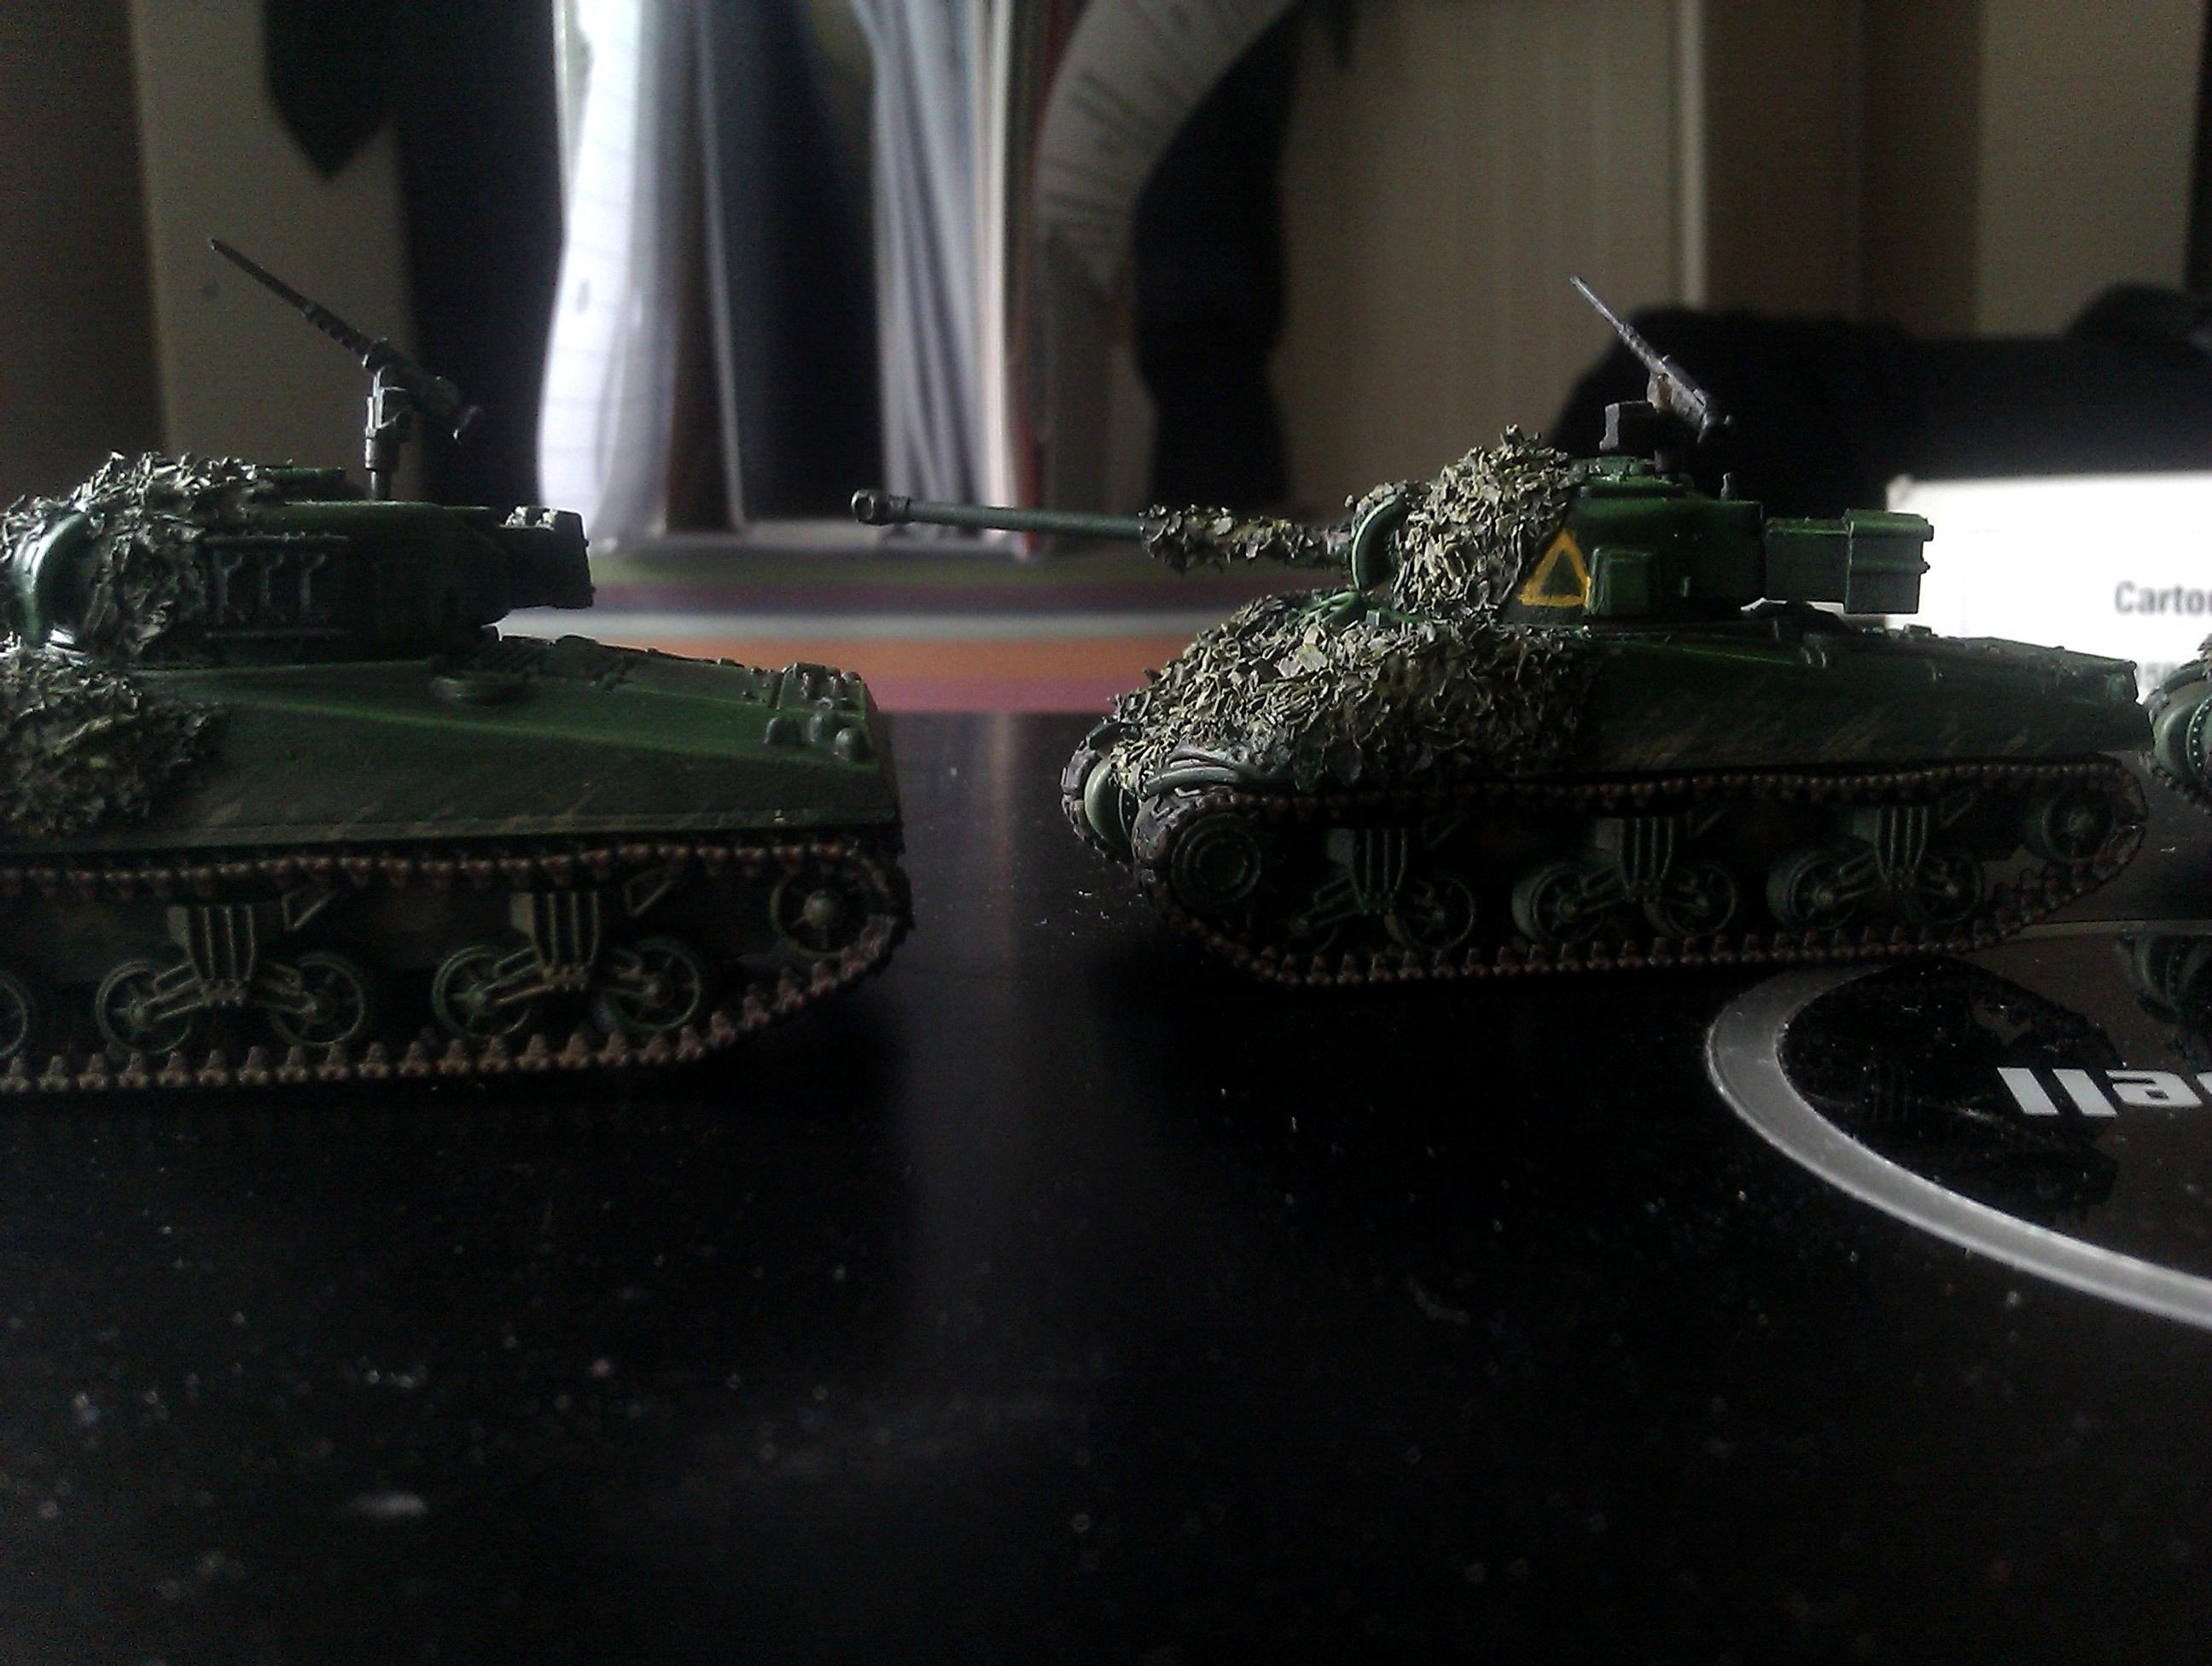 15mm, British, Camouflage, Company, Fireflies, Firefly, Flames, Net, Of, Plastic, Sherman, Soldier, War